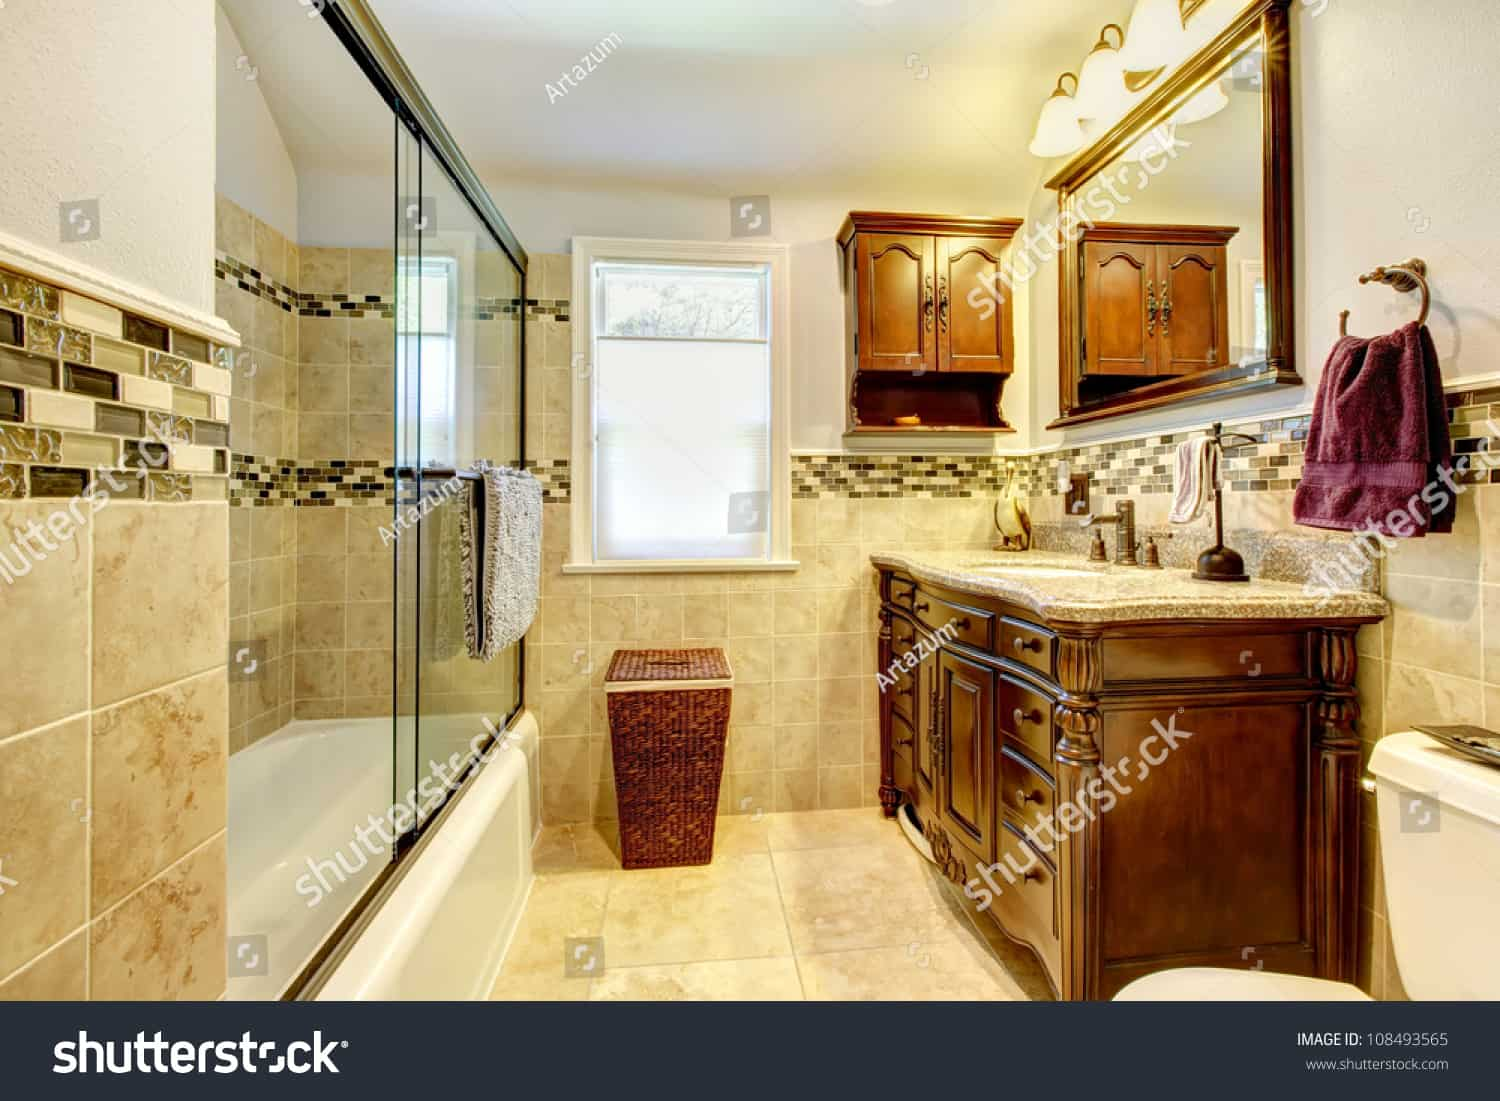 stock photo classic bathroom with natural stone tiles and wood cabinet 108493565